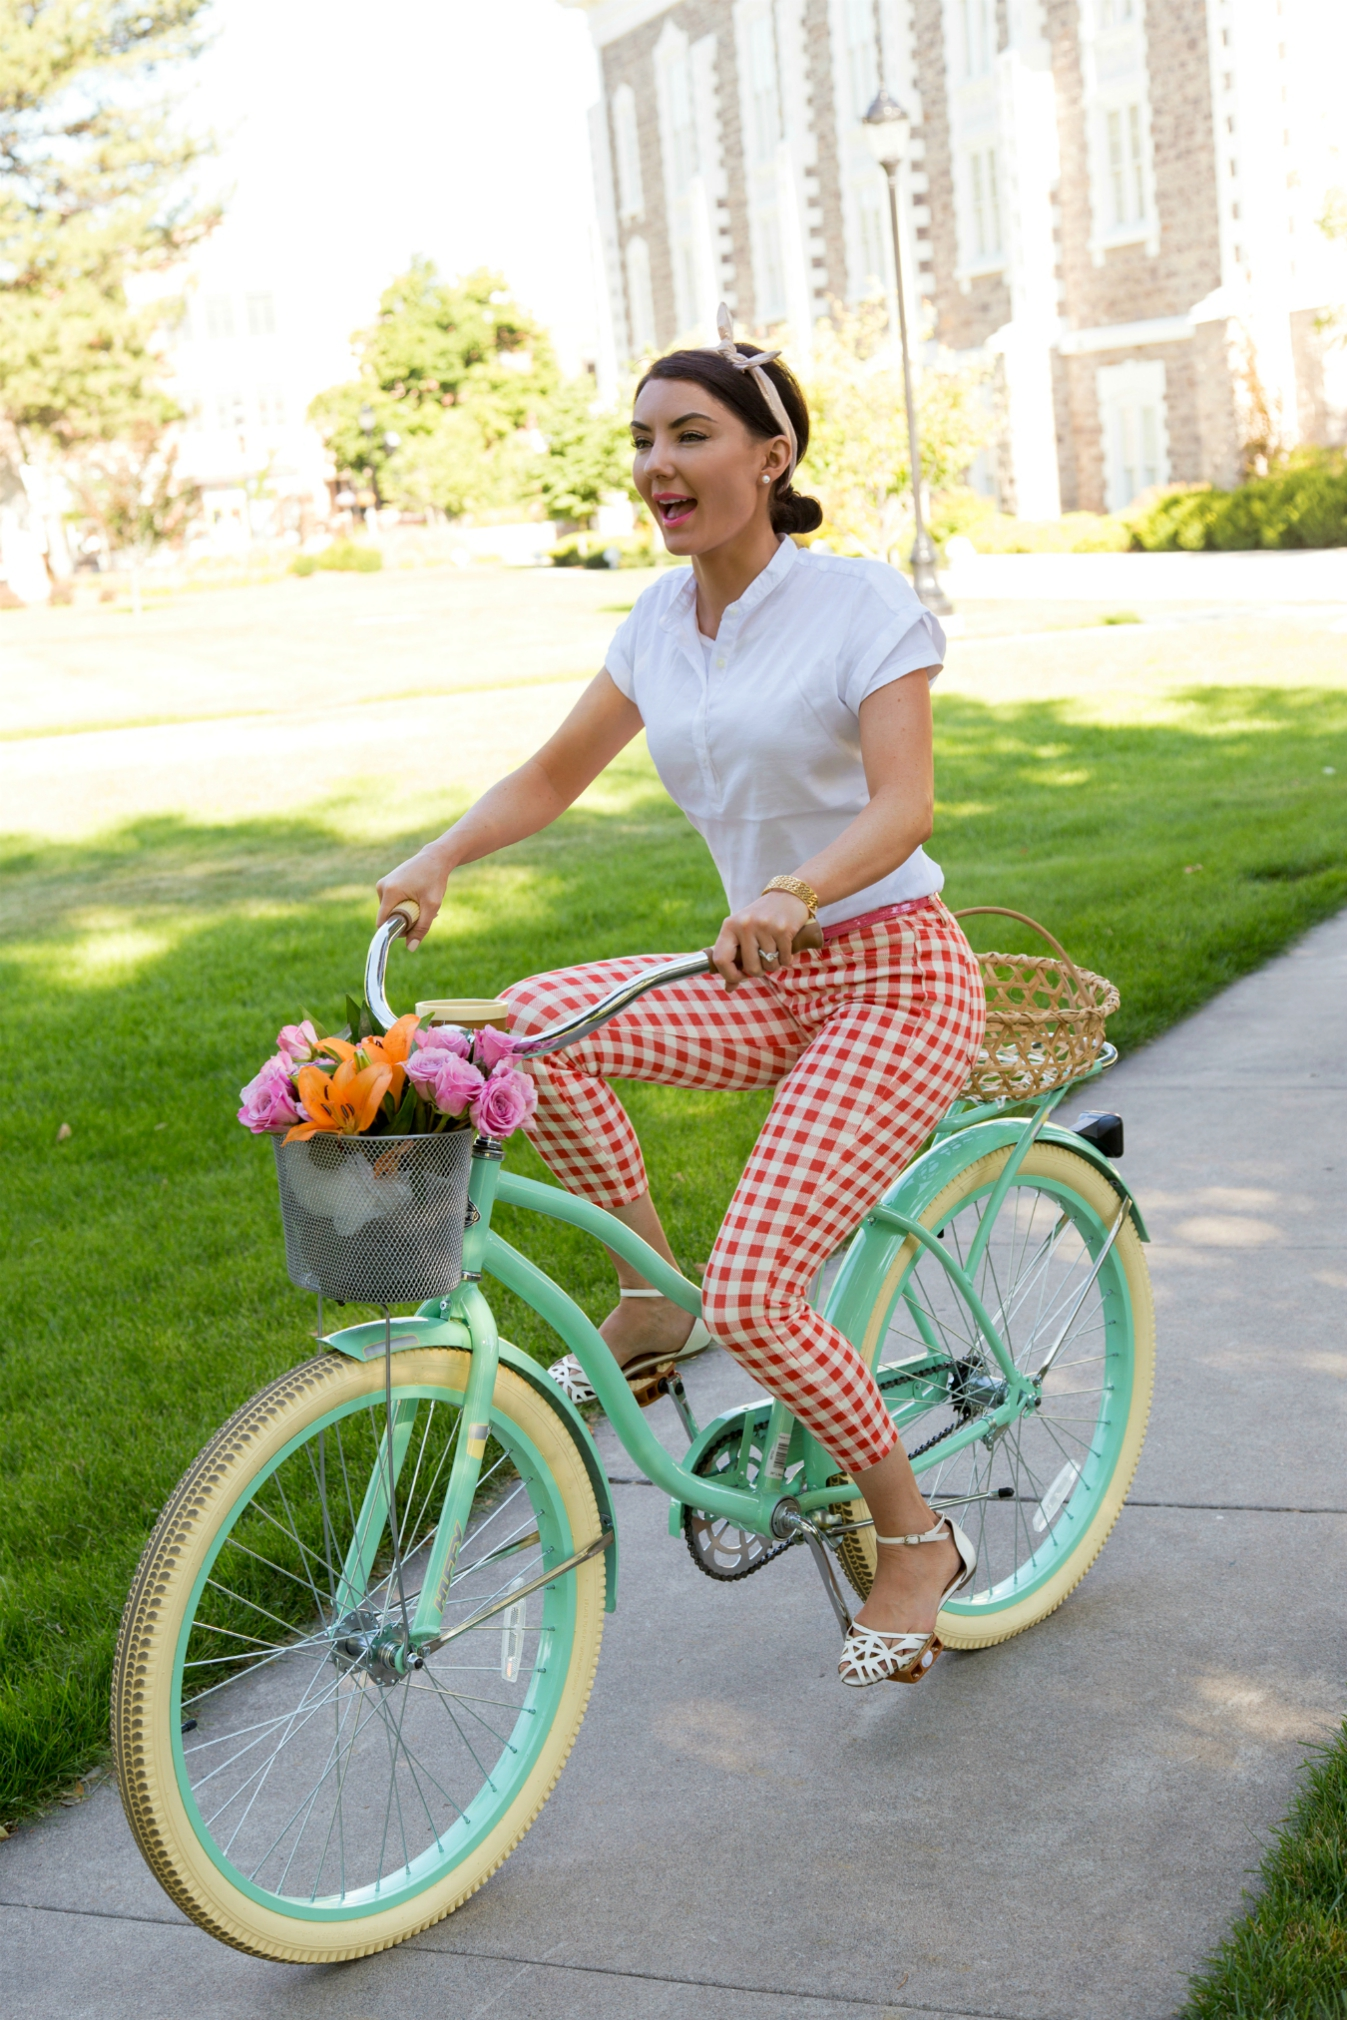 Audrey Hepburn style on a bicycle